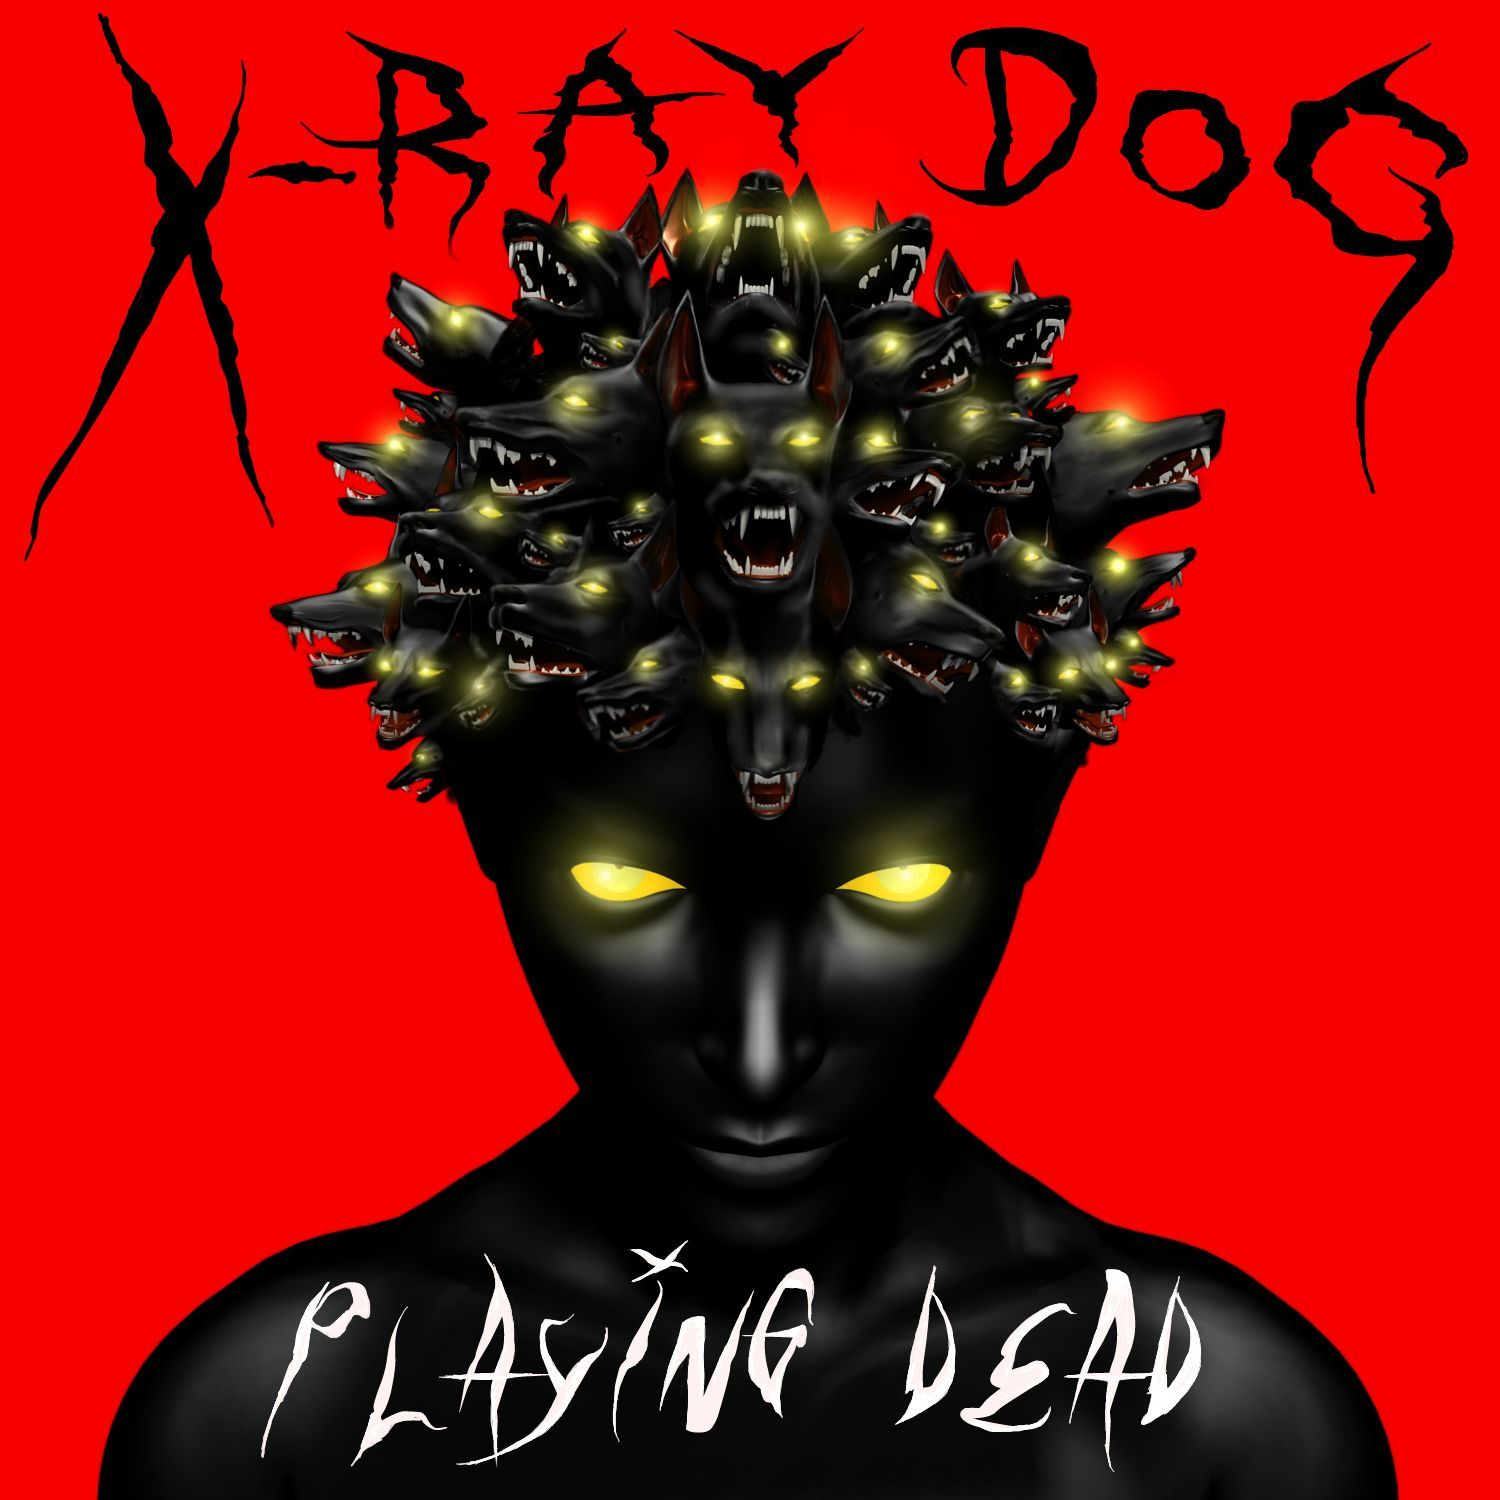 Album Cover For X Ray Dog Music Inc Art And Design By Paul Kolbach Album Covers Album Cover